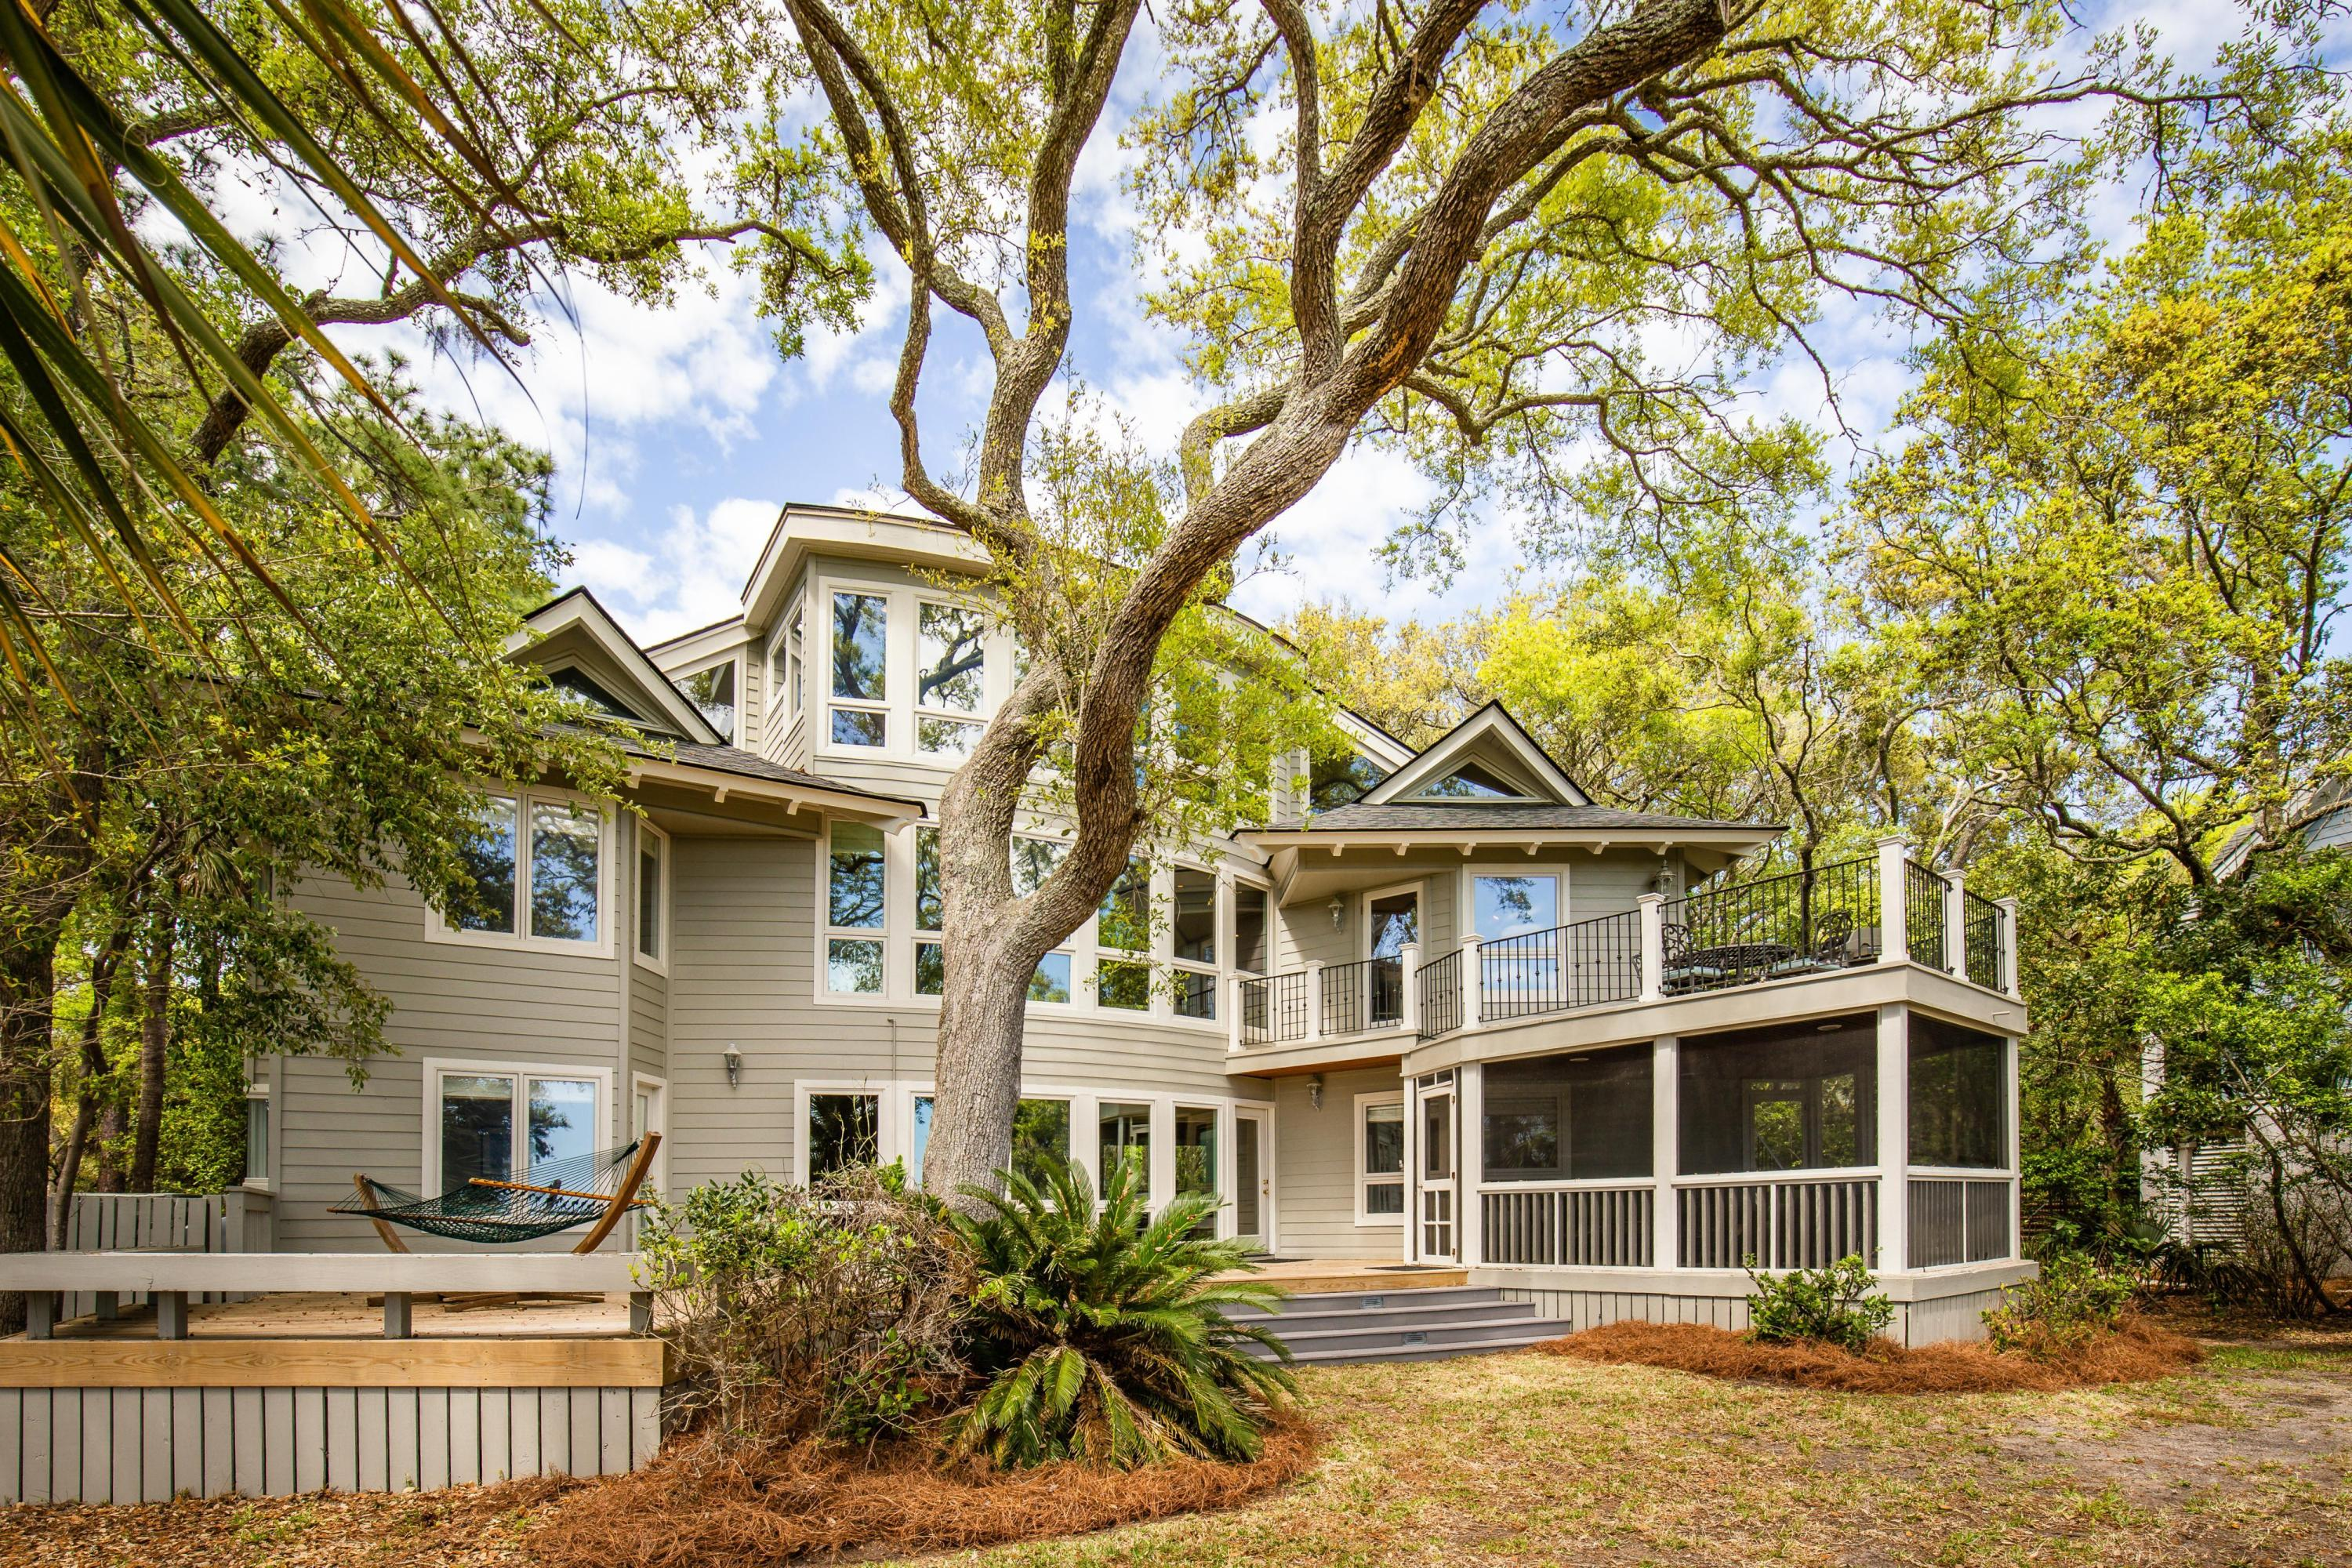 3011 Marsh Haven Seabrook Island, SC 29455